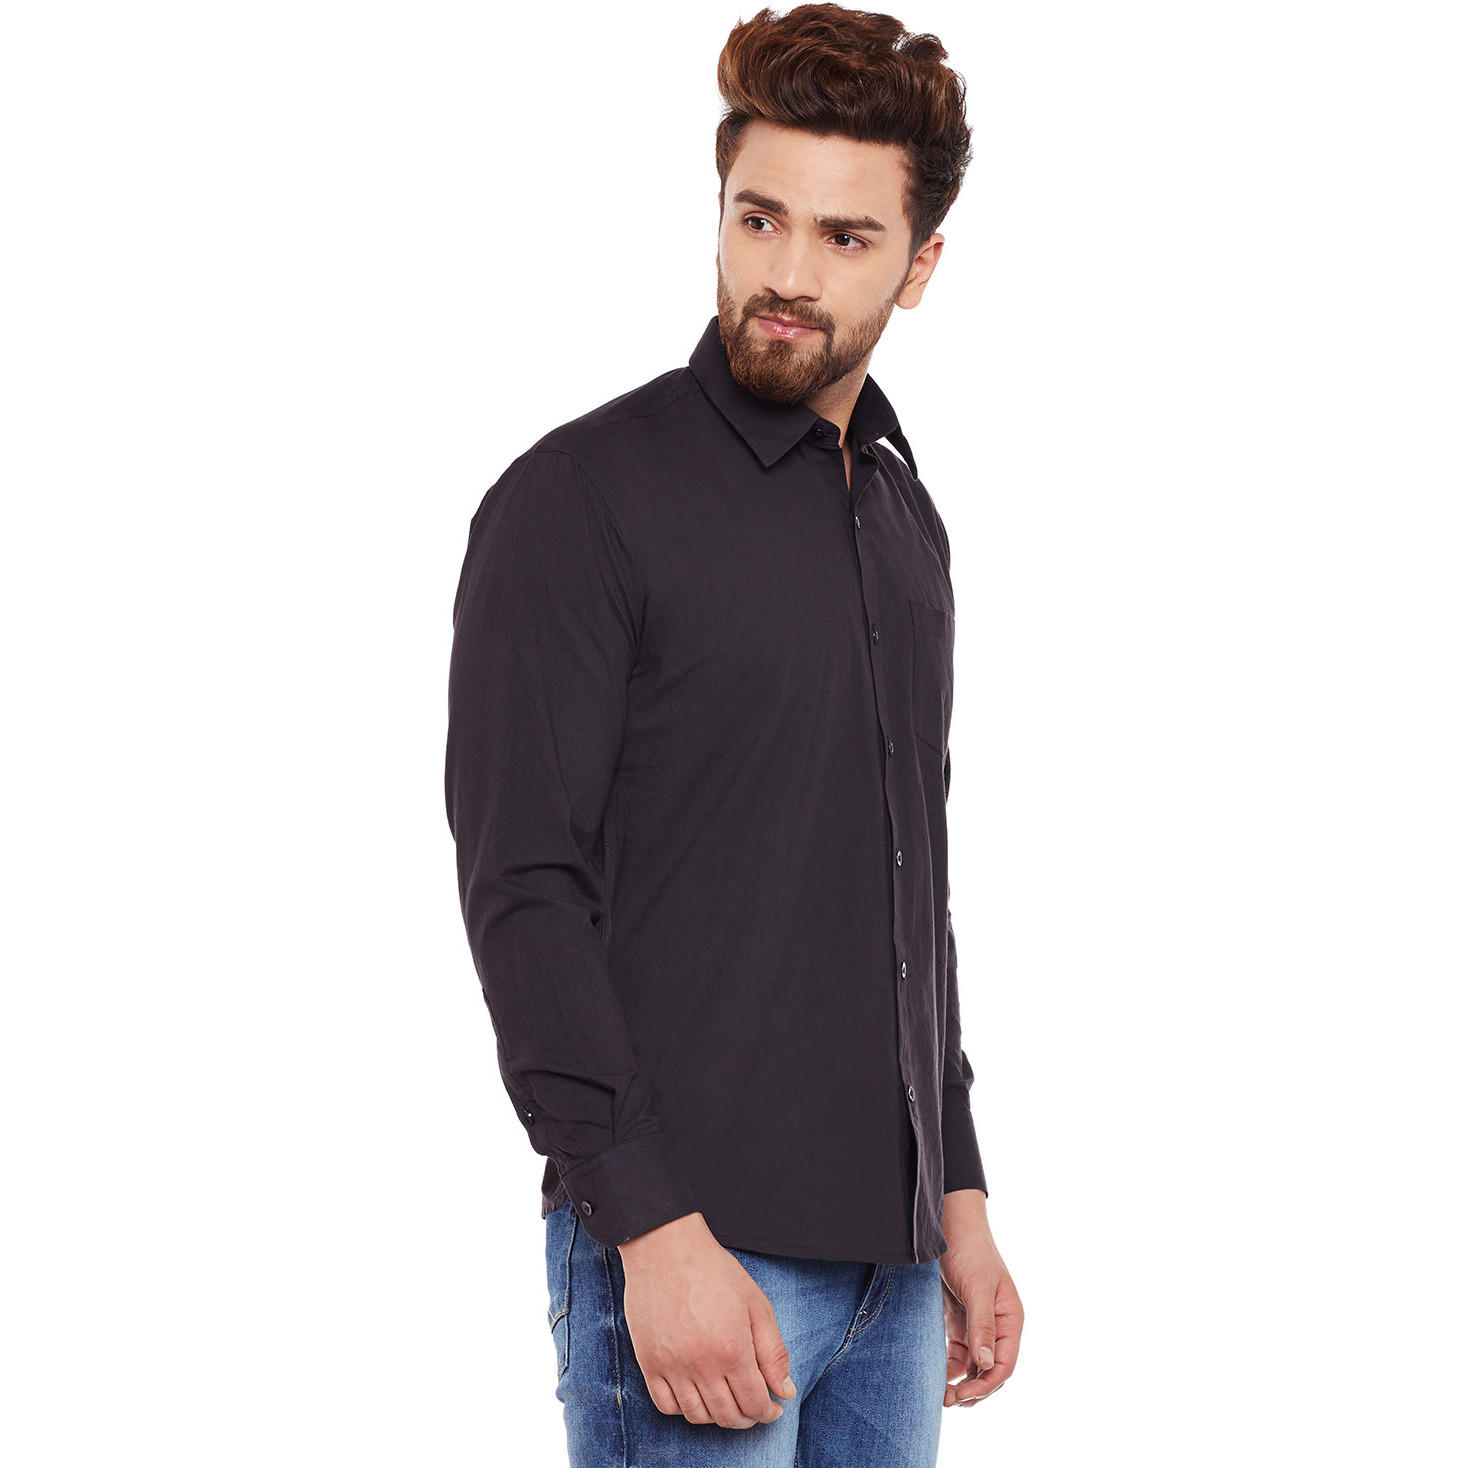 Mens Black Cotton Shirt Regular Fit Full sleeve Classic Collar